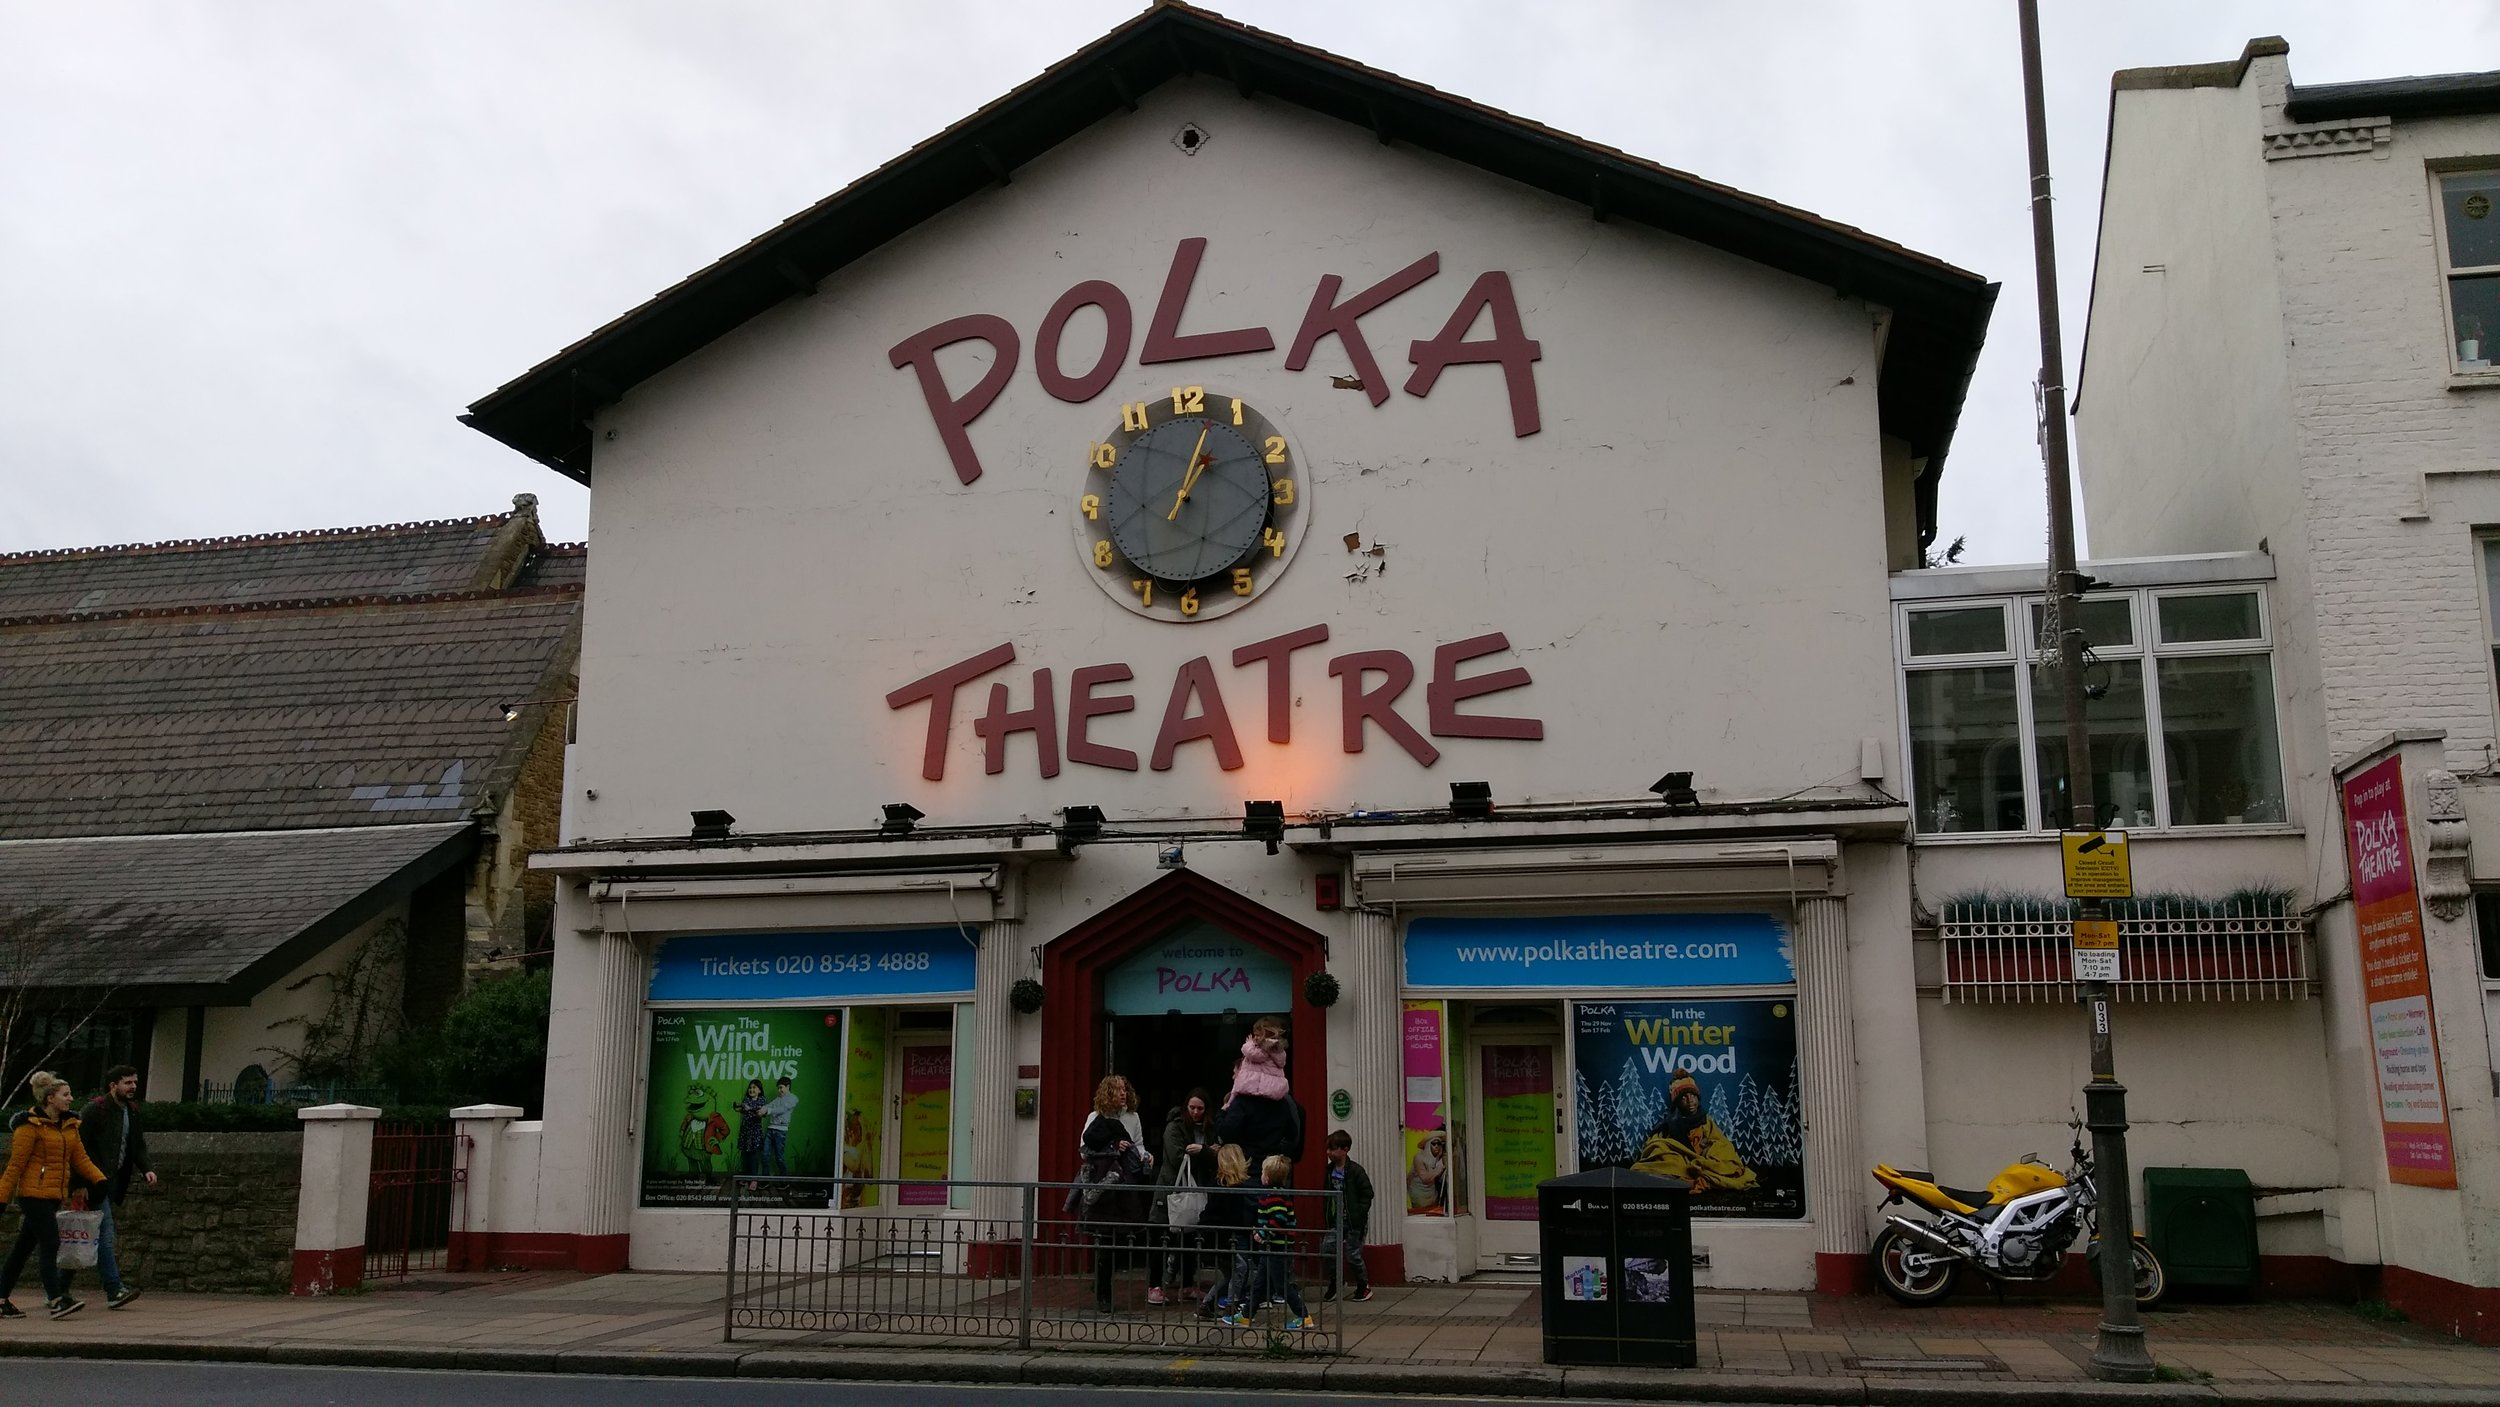 Polka Theatre - visited 12/01/2019